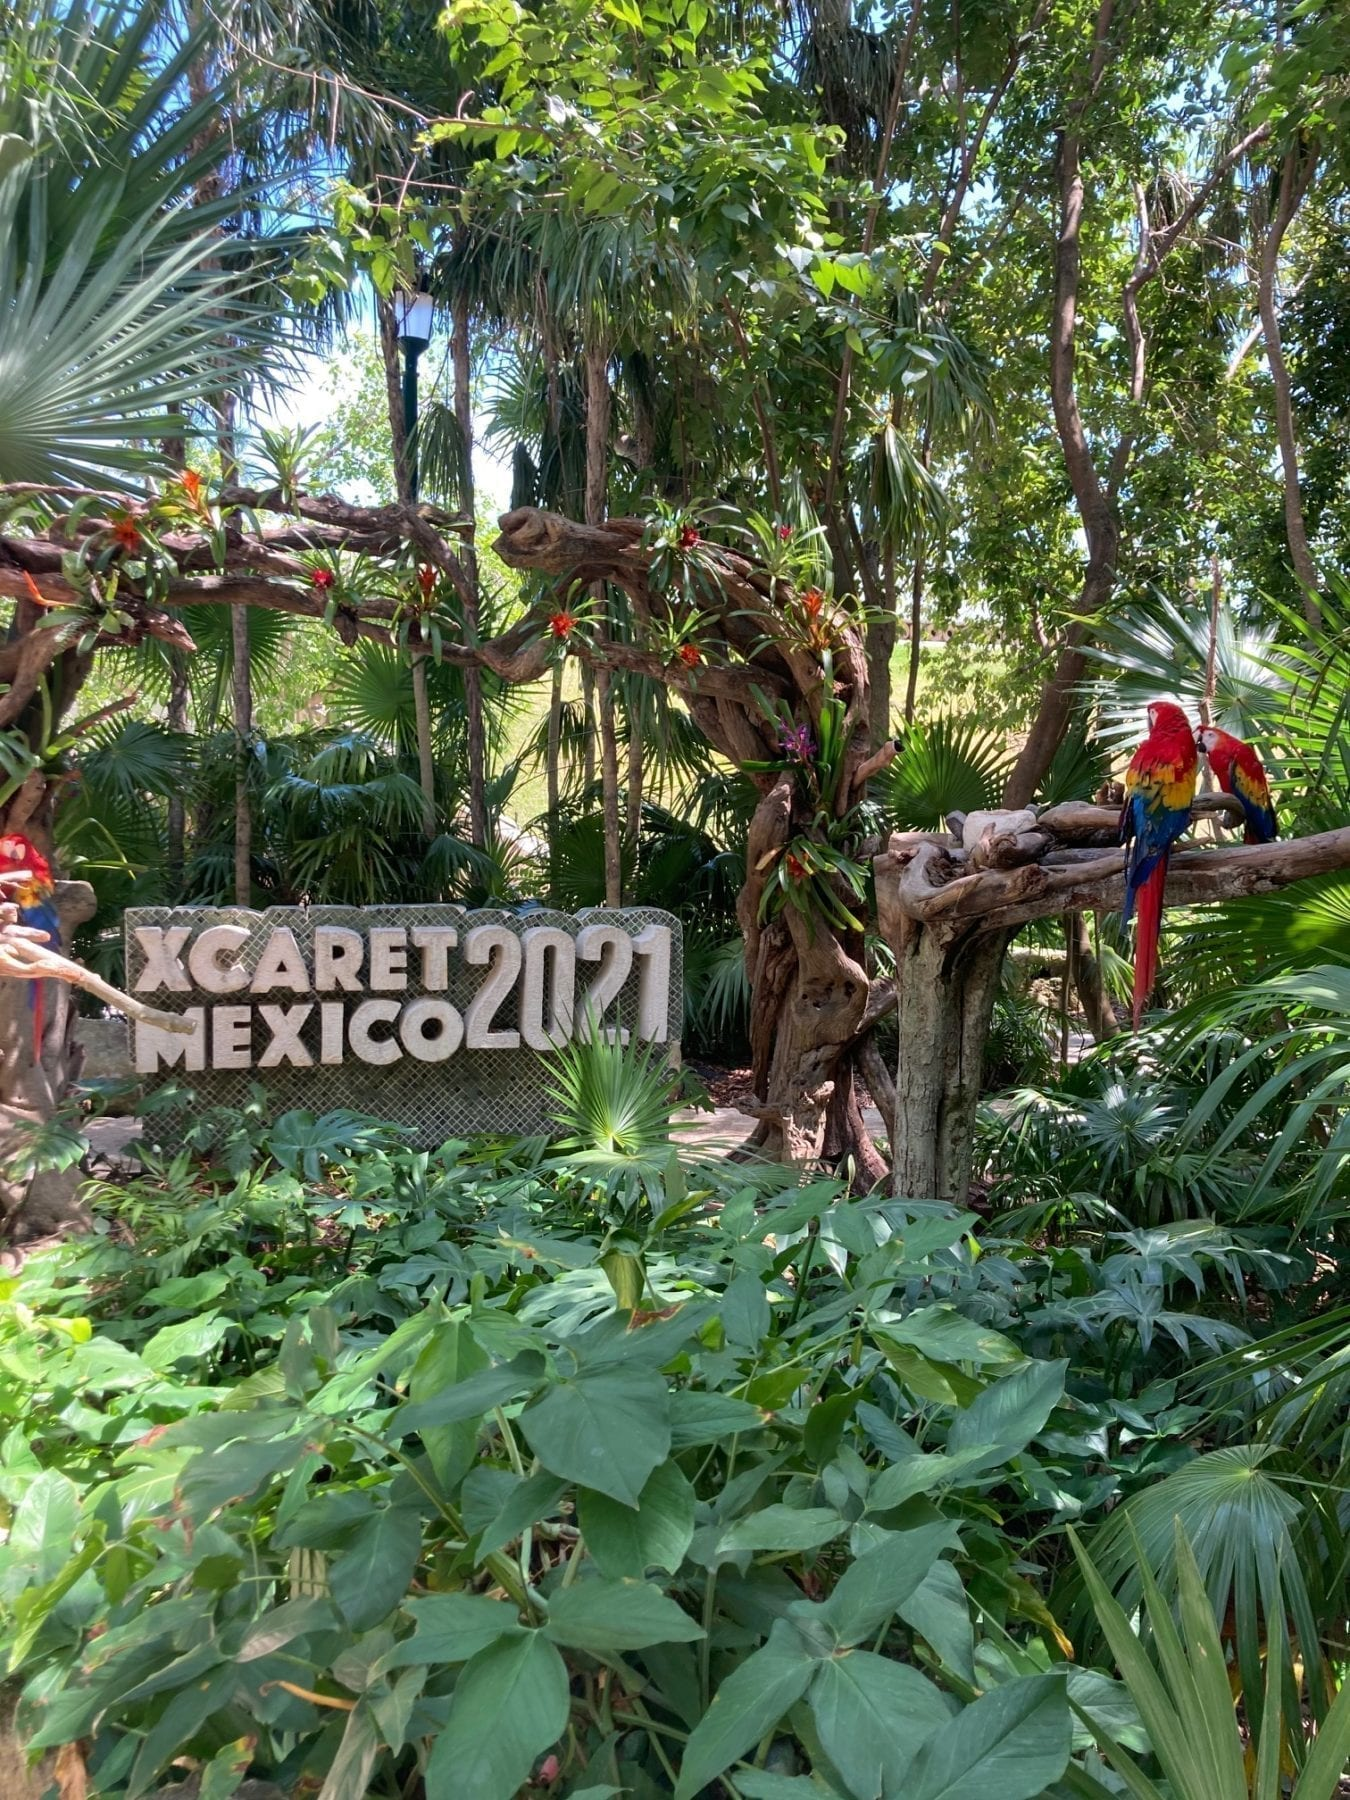 Xcaret Activities in Cancun Mexico